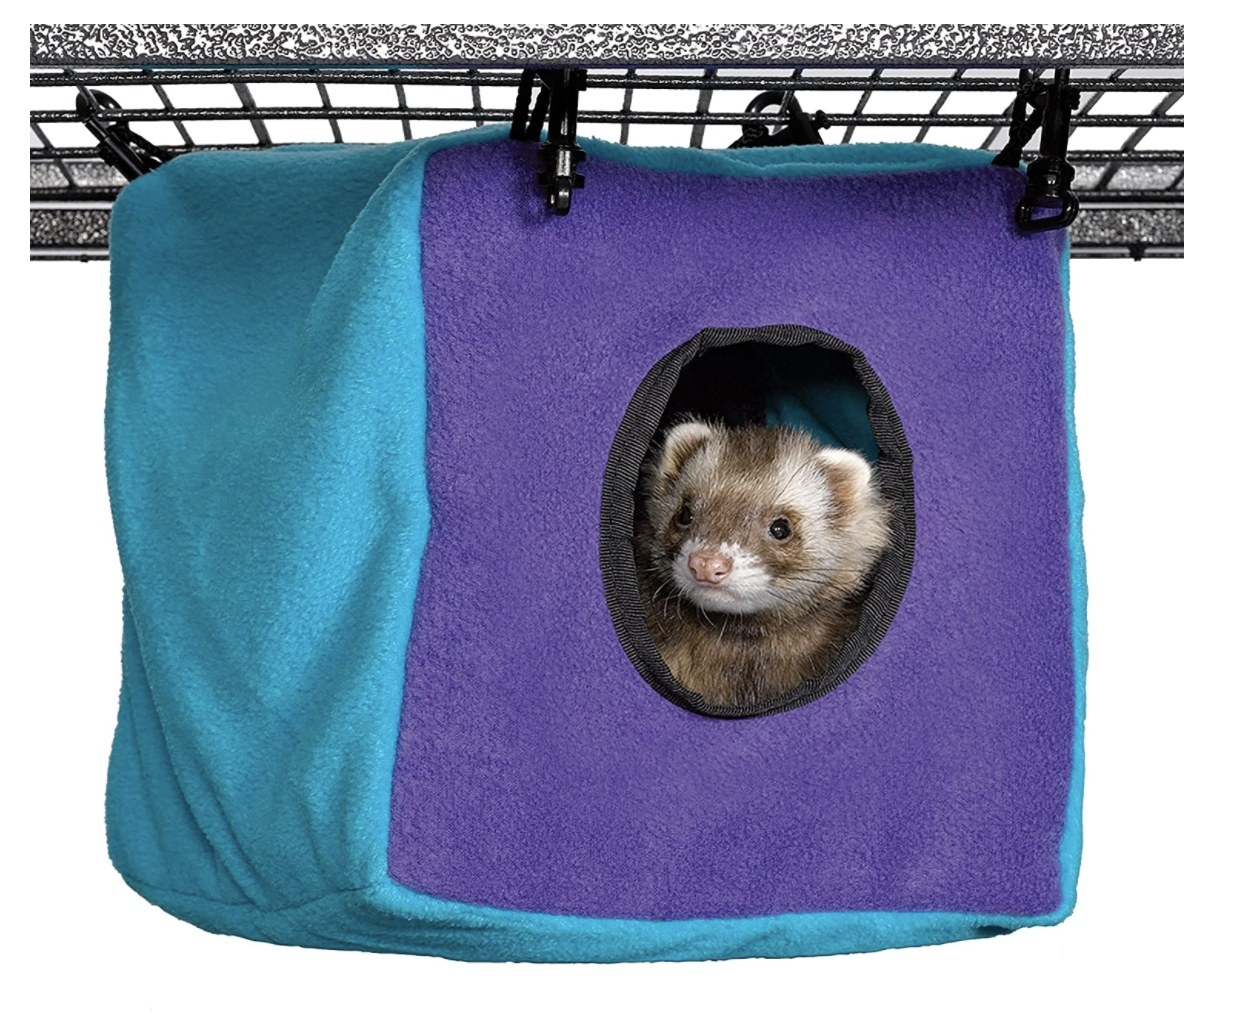 A ferret hanging out in a teal and purple plush cube